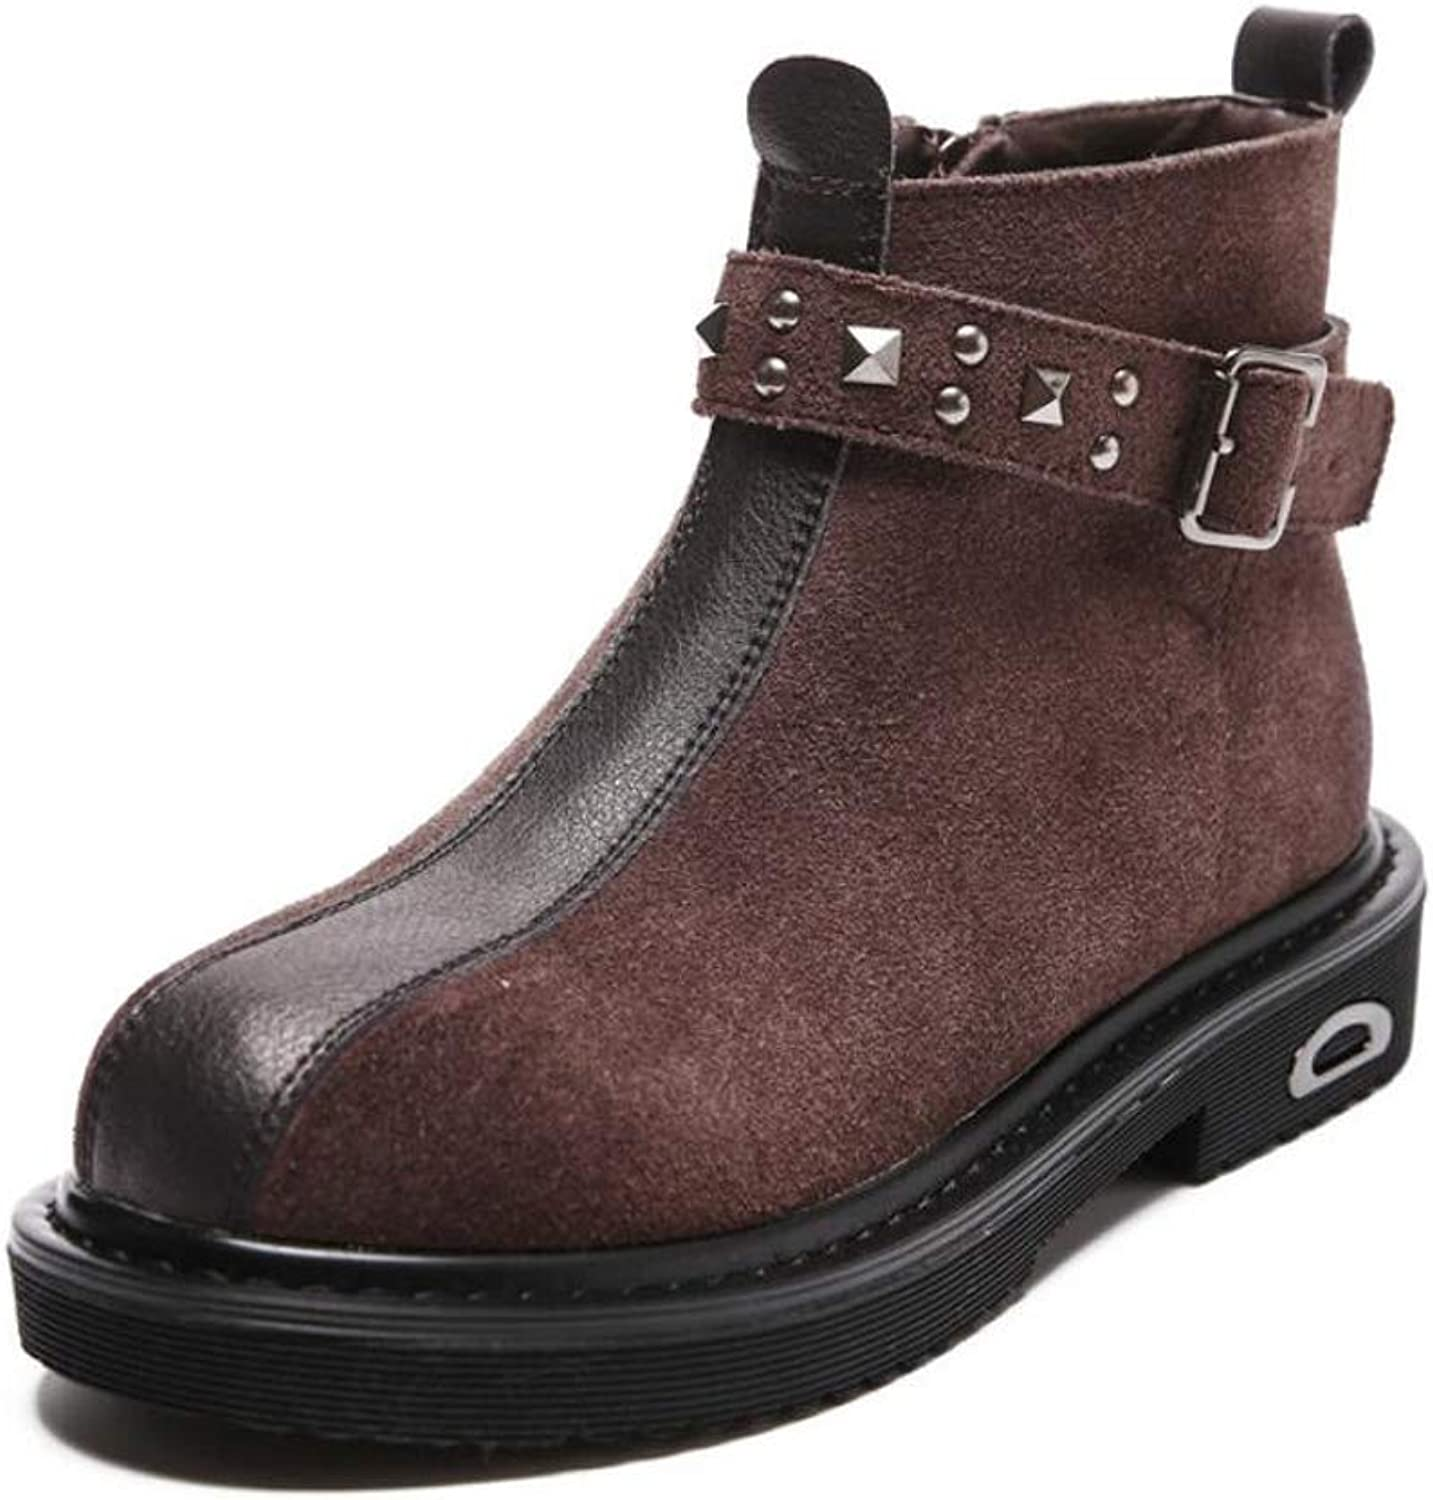 DANDANJIE Women's Martin Boots Autumn and Winter Retro Boots Casual shoes